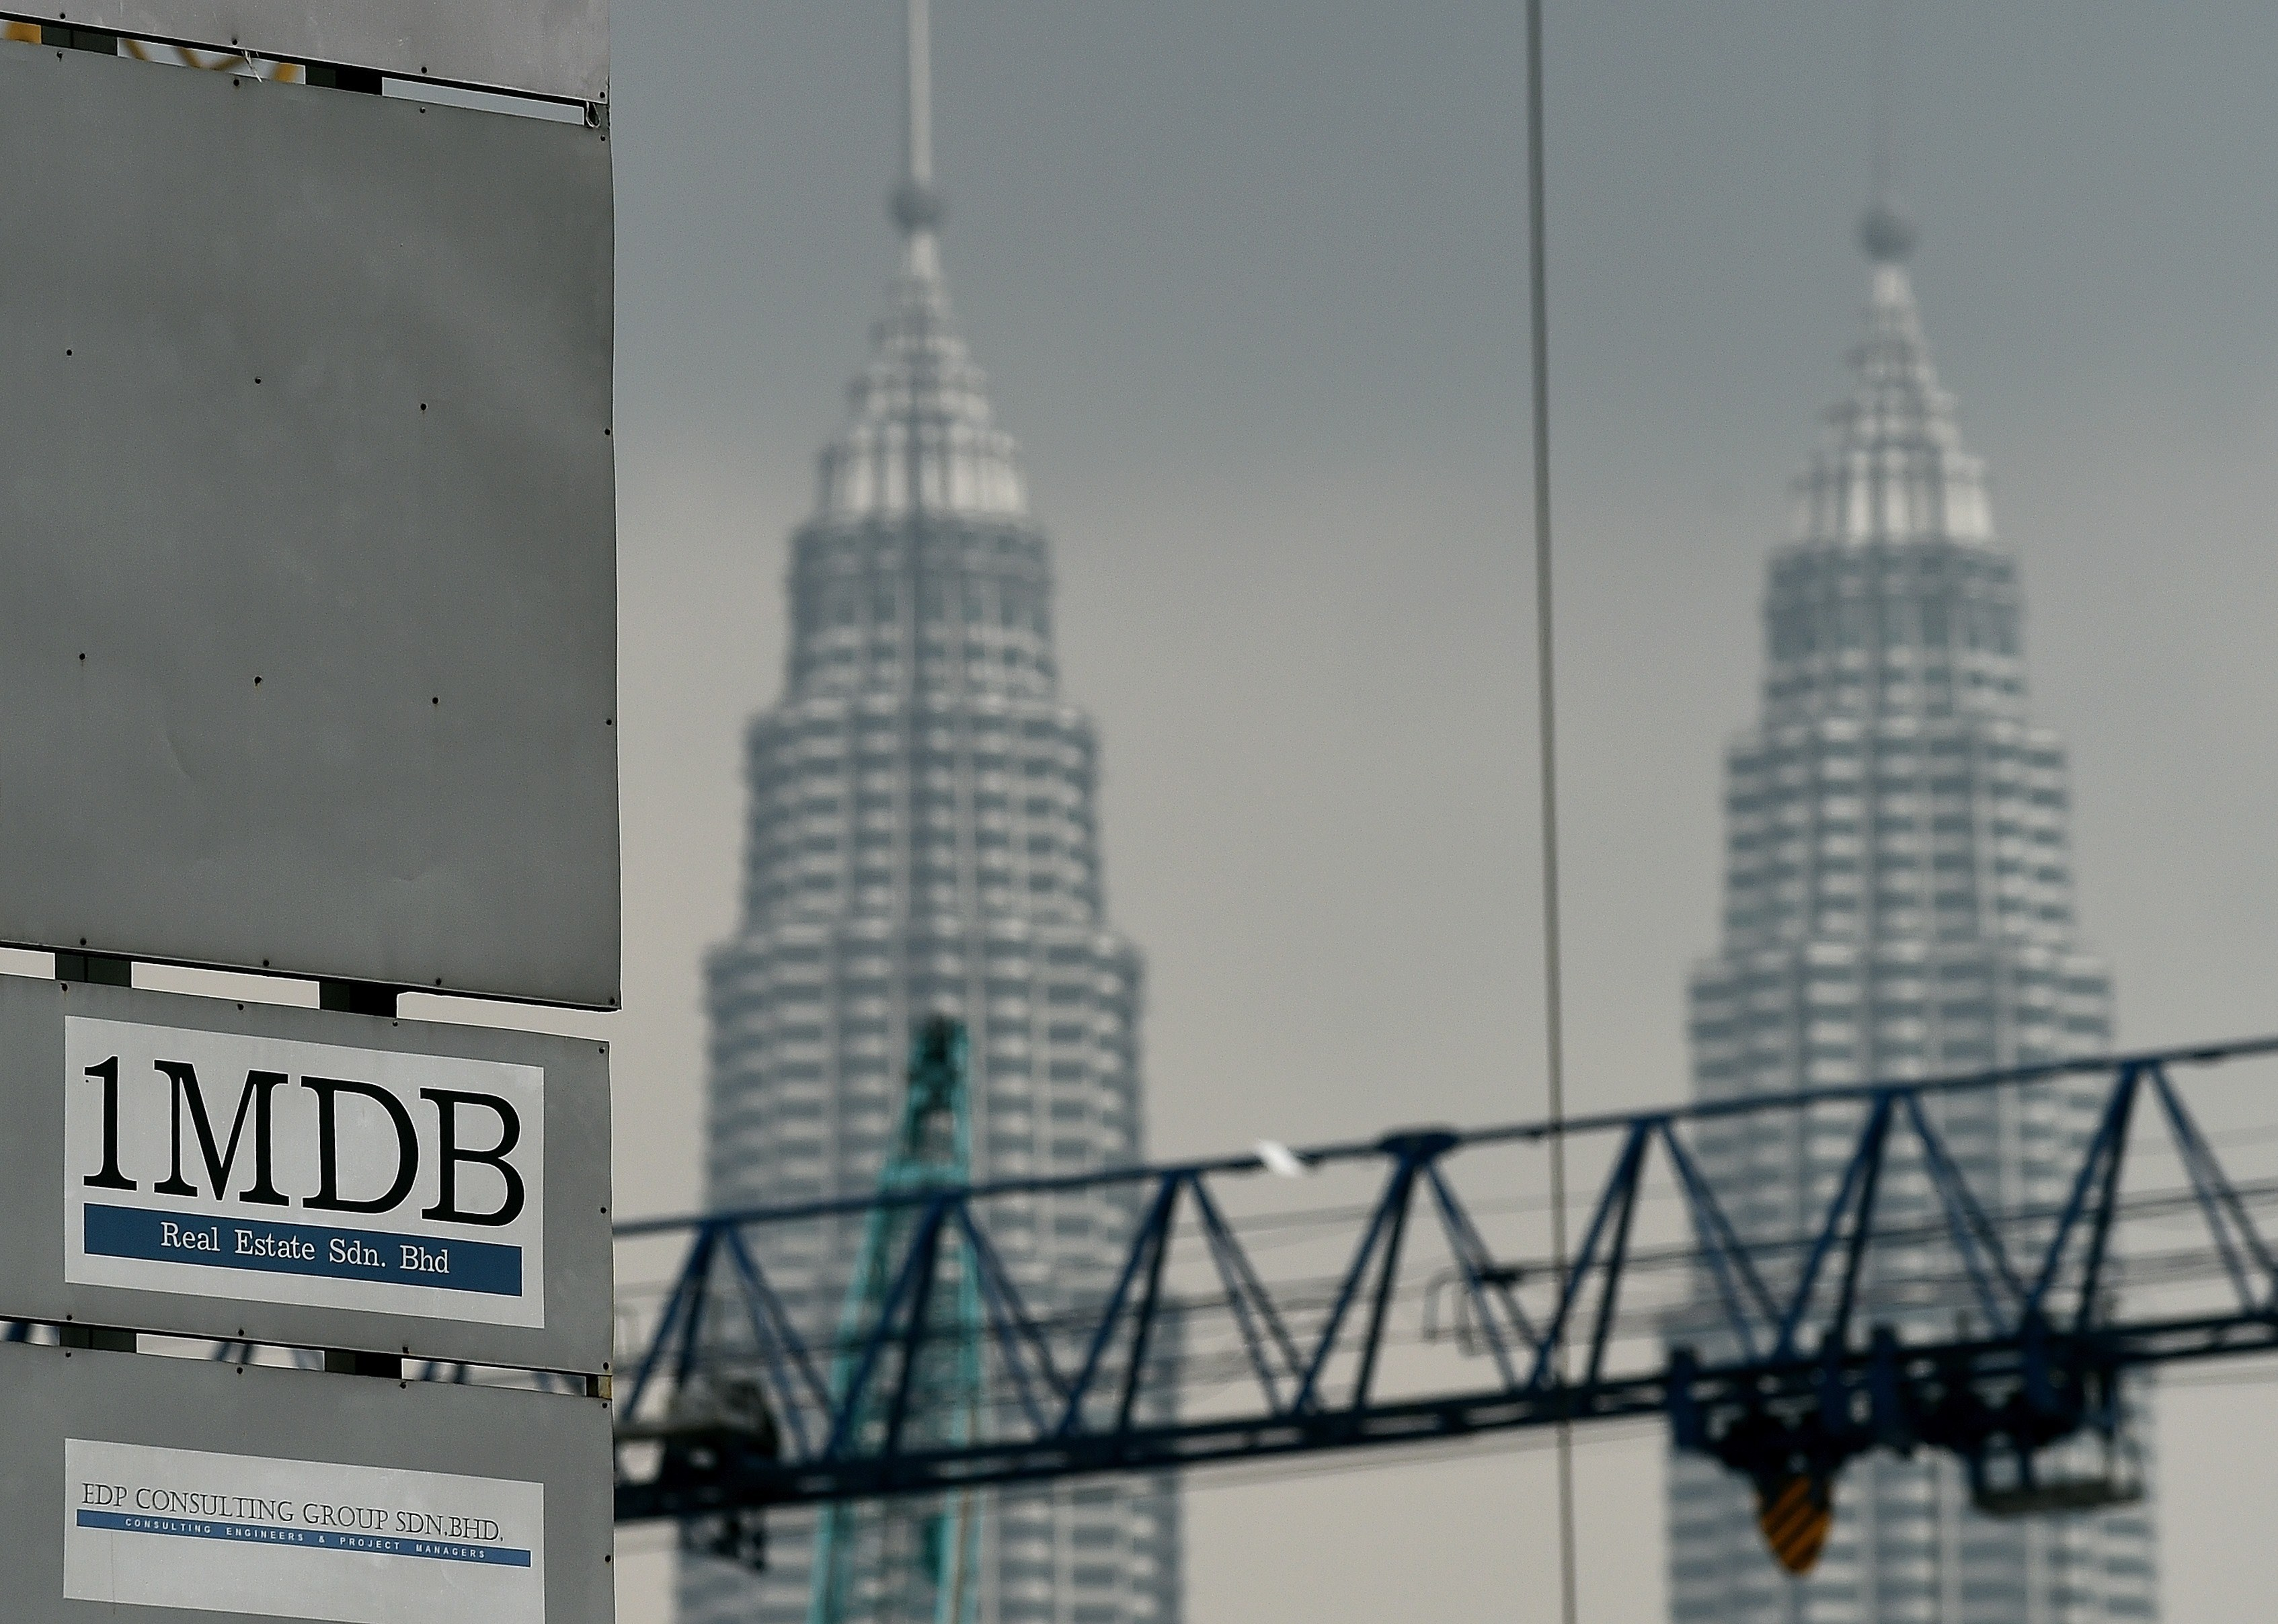 The 1 Malaysia Development Berhad (1MDB) logo is seen on a billboard at the funds flagship Tun Razak Exchange's under-development site in Kuala Lumpur on July 3, 2015